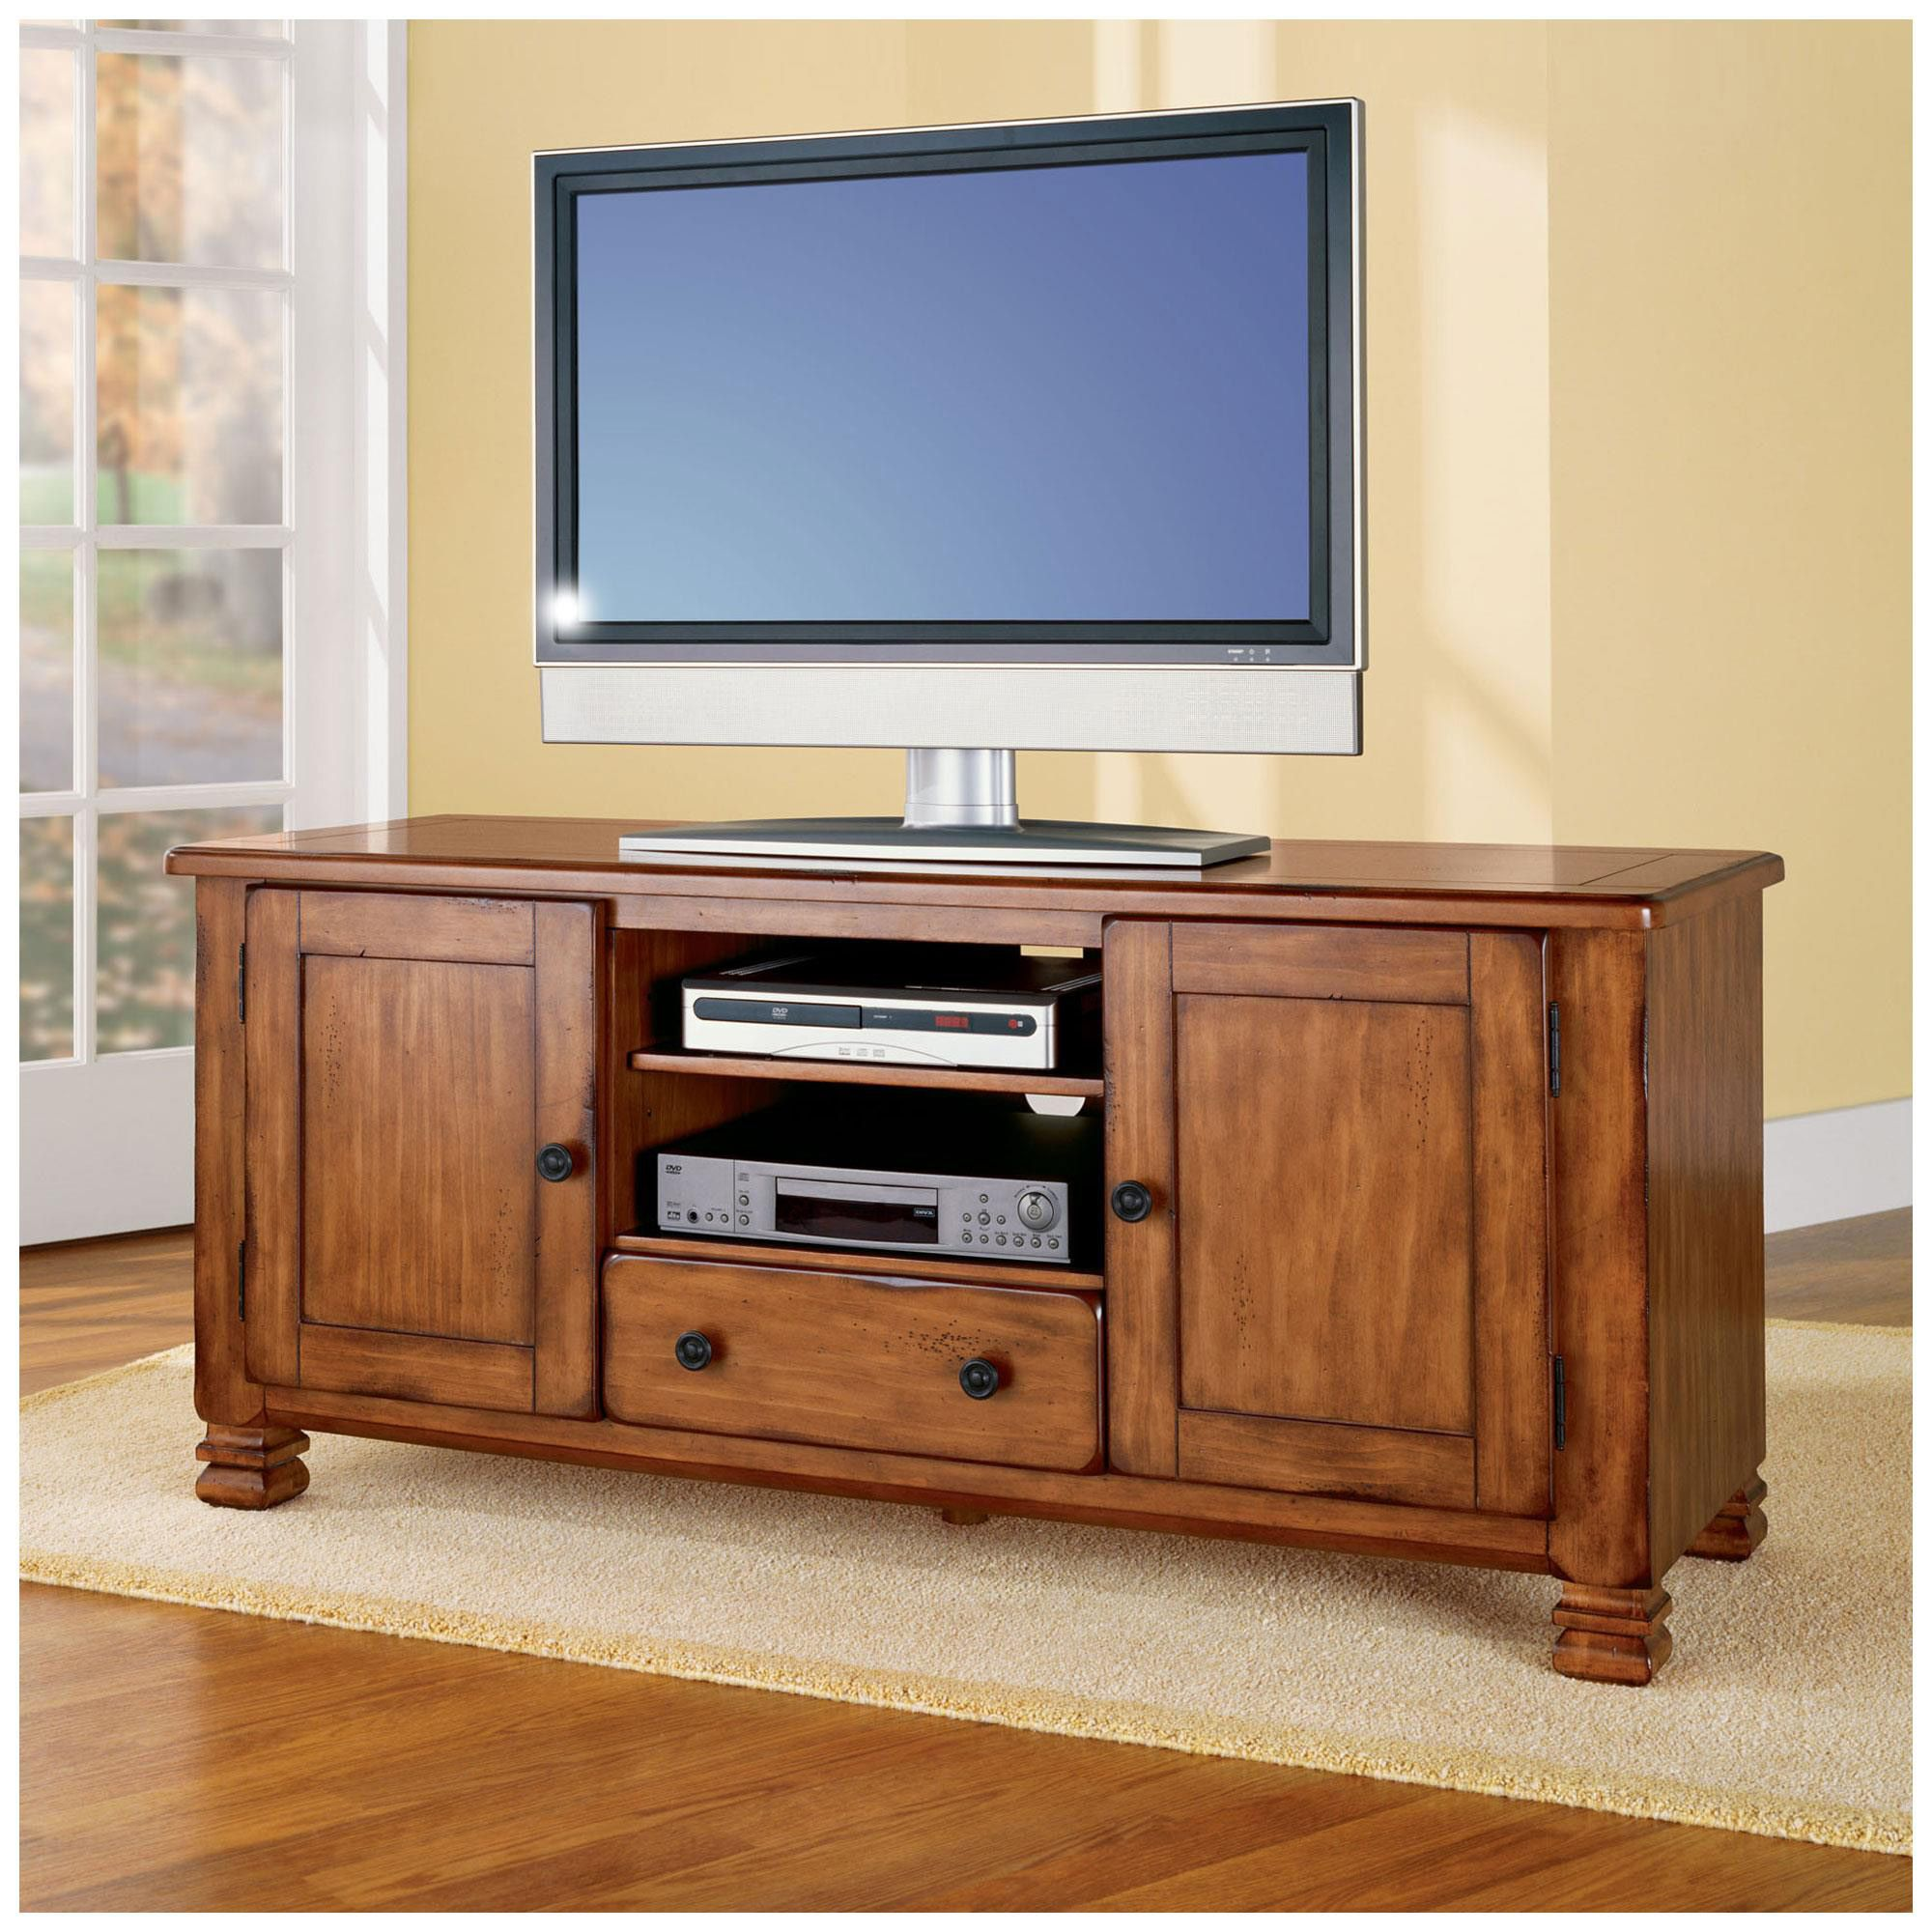 Dorel Home Furnishings Summit Mountain Tuscany Oak Tv Stand Brown Home Tv Stand Wood Oak Tv Stand Oak tv stands for 55 inch tv